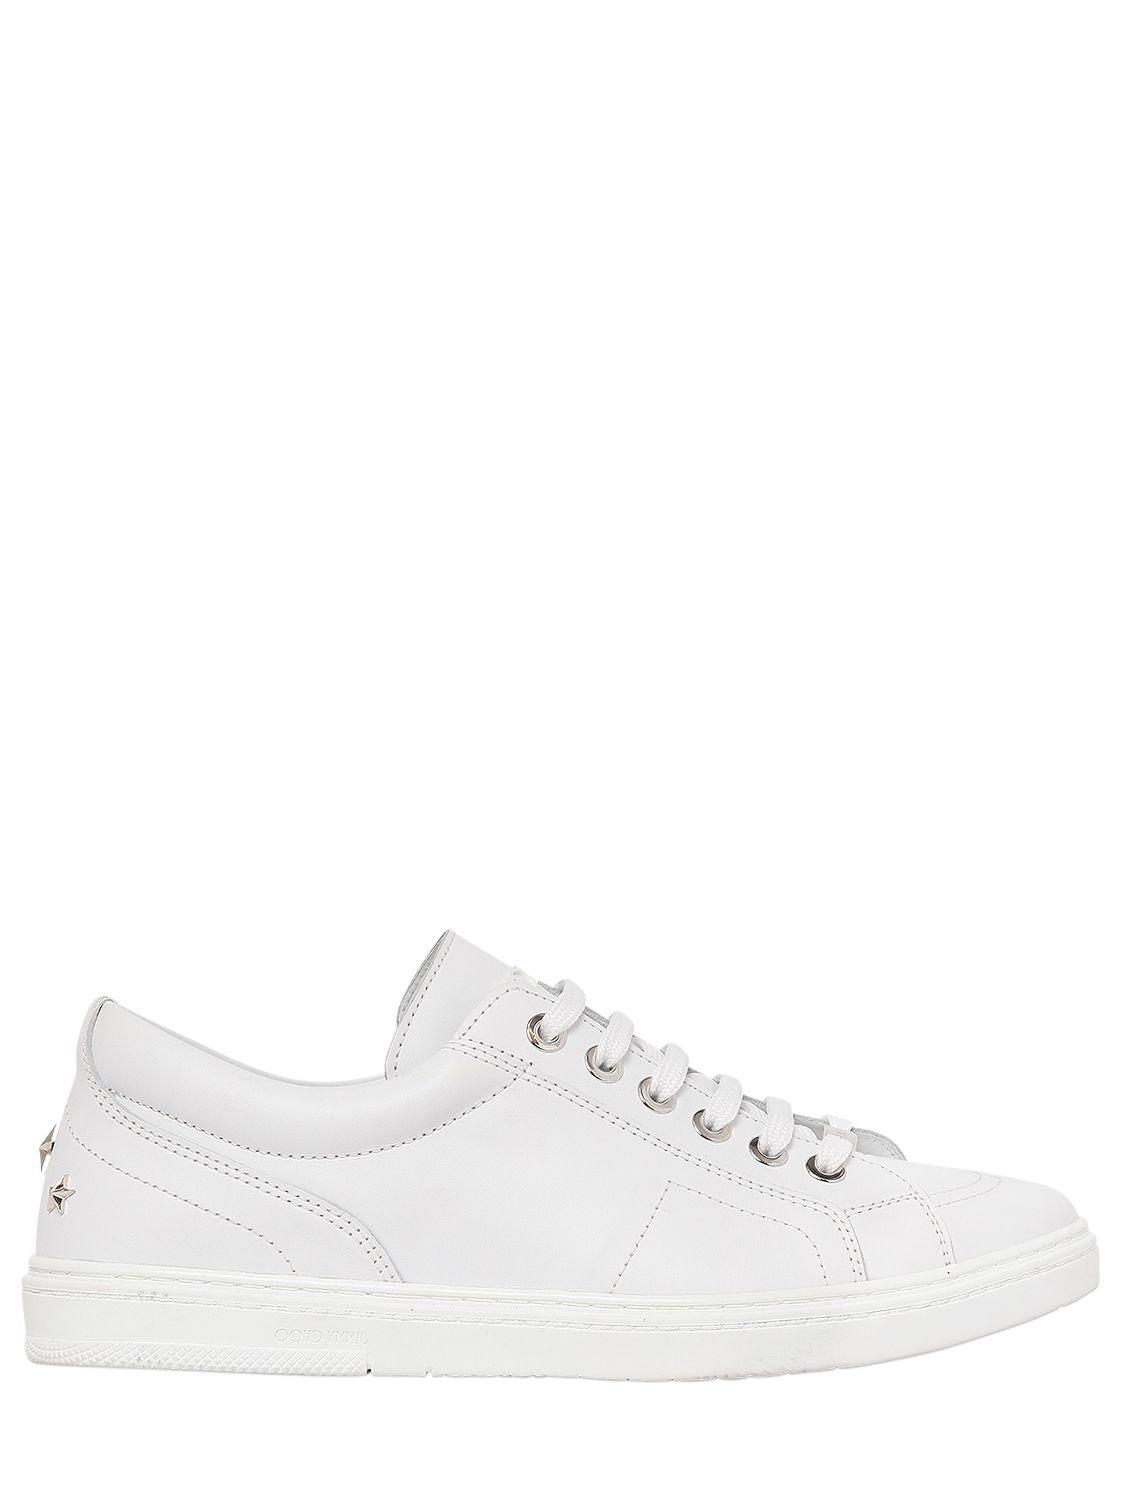 Jimmy choo SMOOTH LEATHER HIGH TOP SNEAKERS Ffc0BKb6